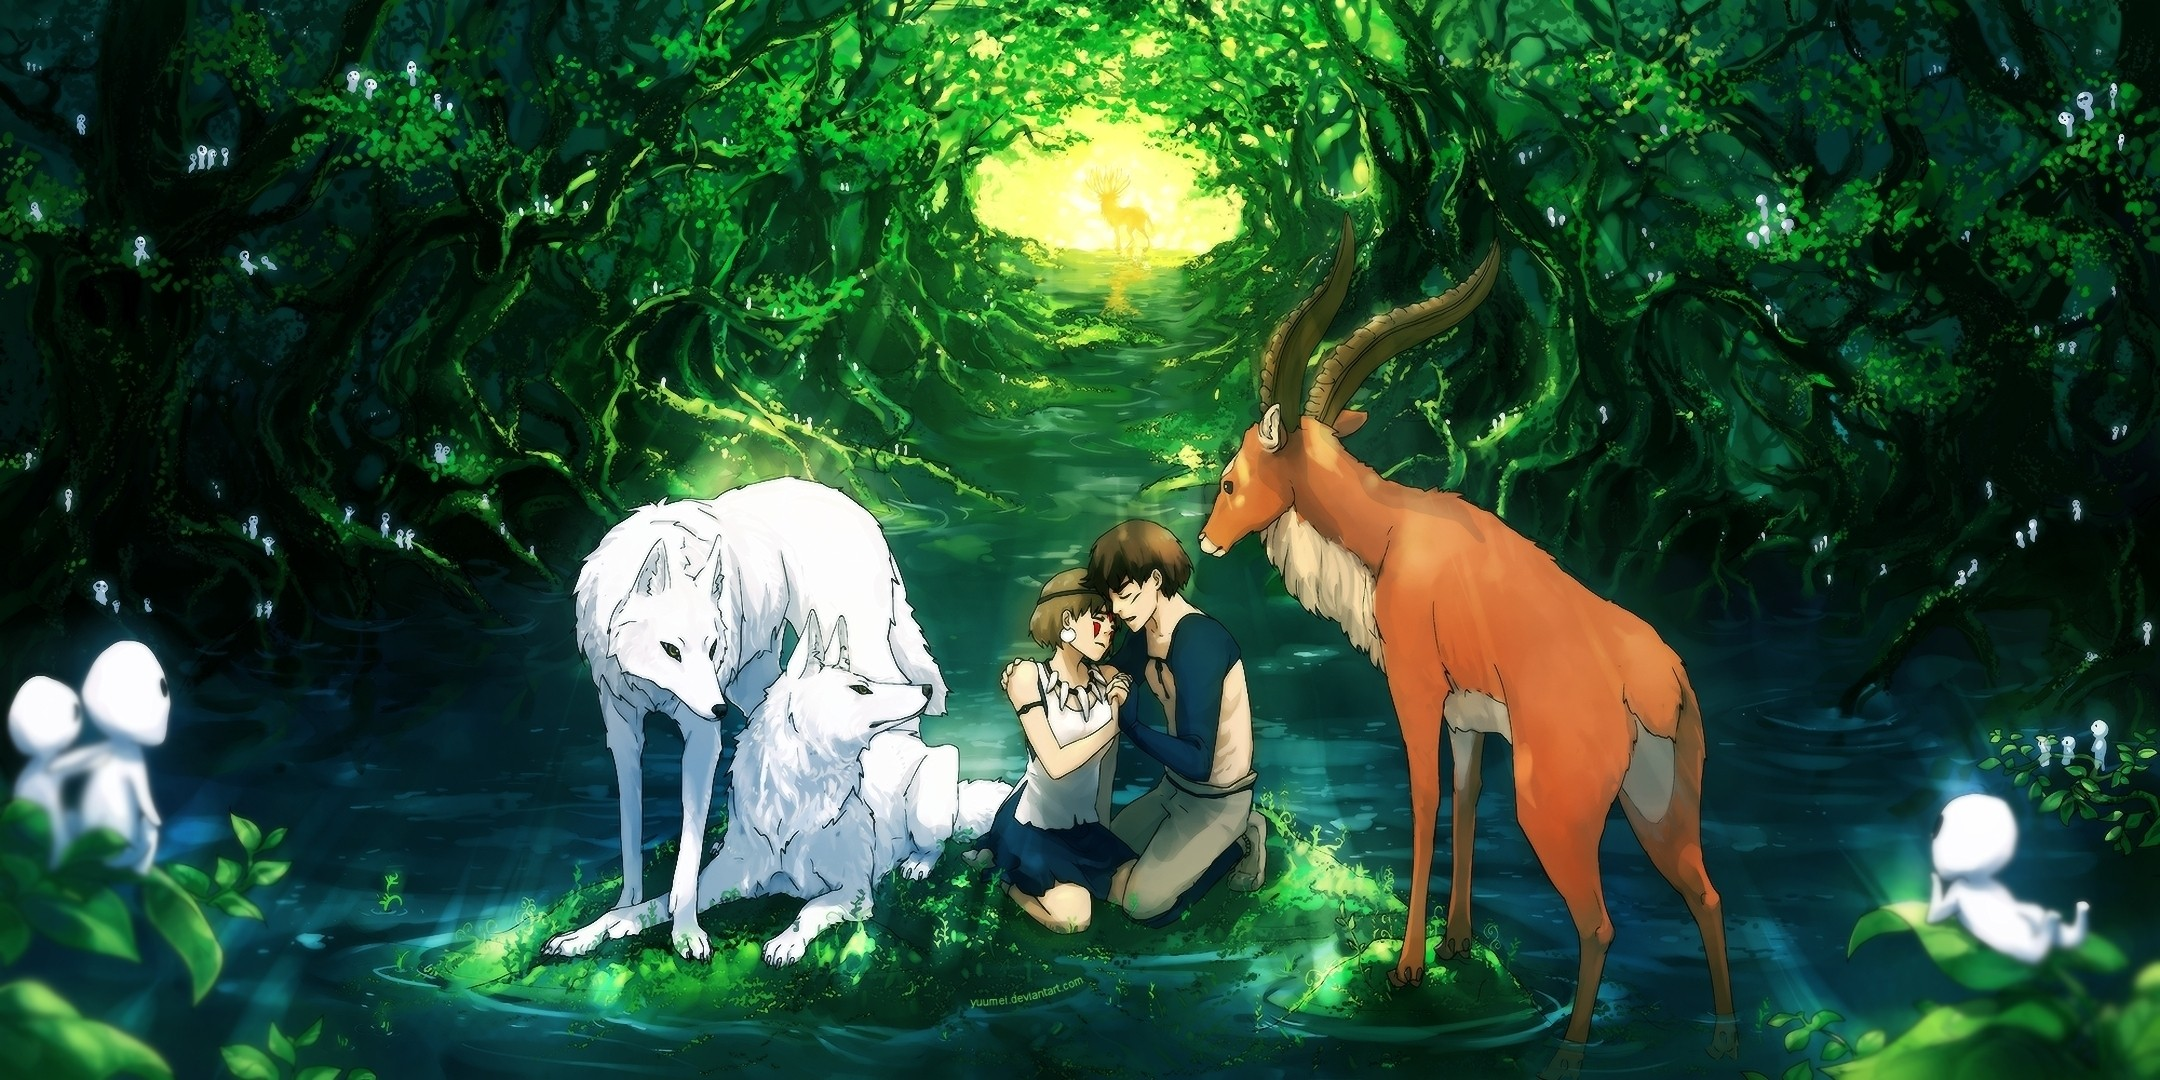 Anime-x1080-Studio-Ghibli-Princess-Mononoke-wallpaper-wp3602525